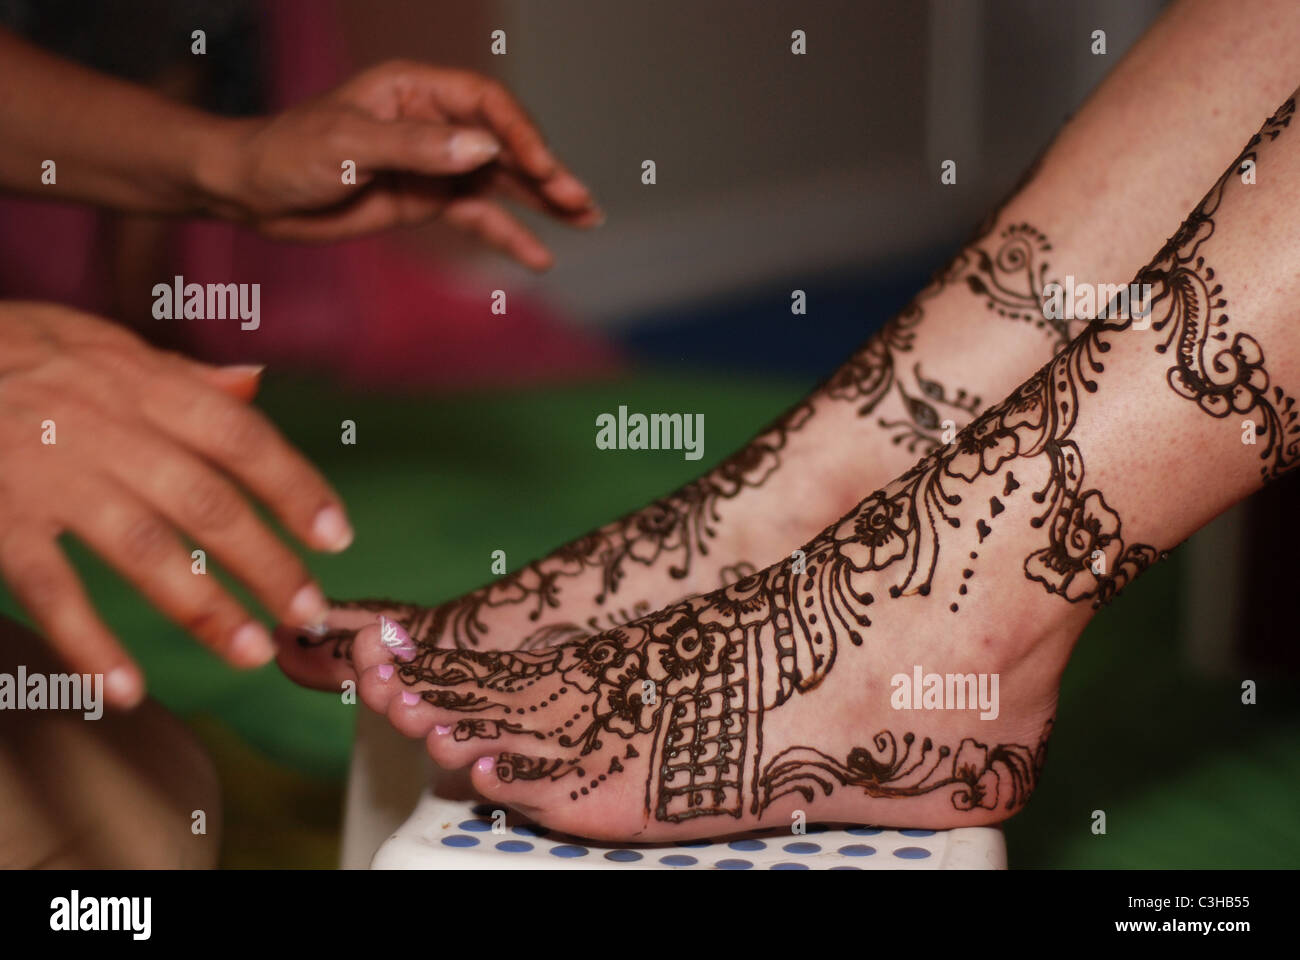 Artist having Completed Mehndi Application to the Feet of a Bride - Stock Image